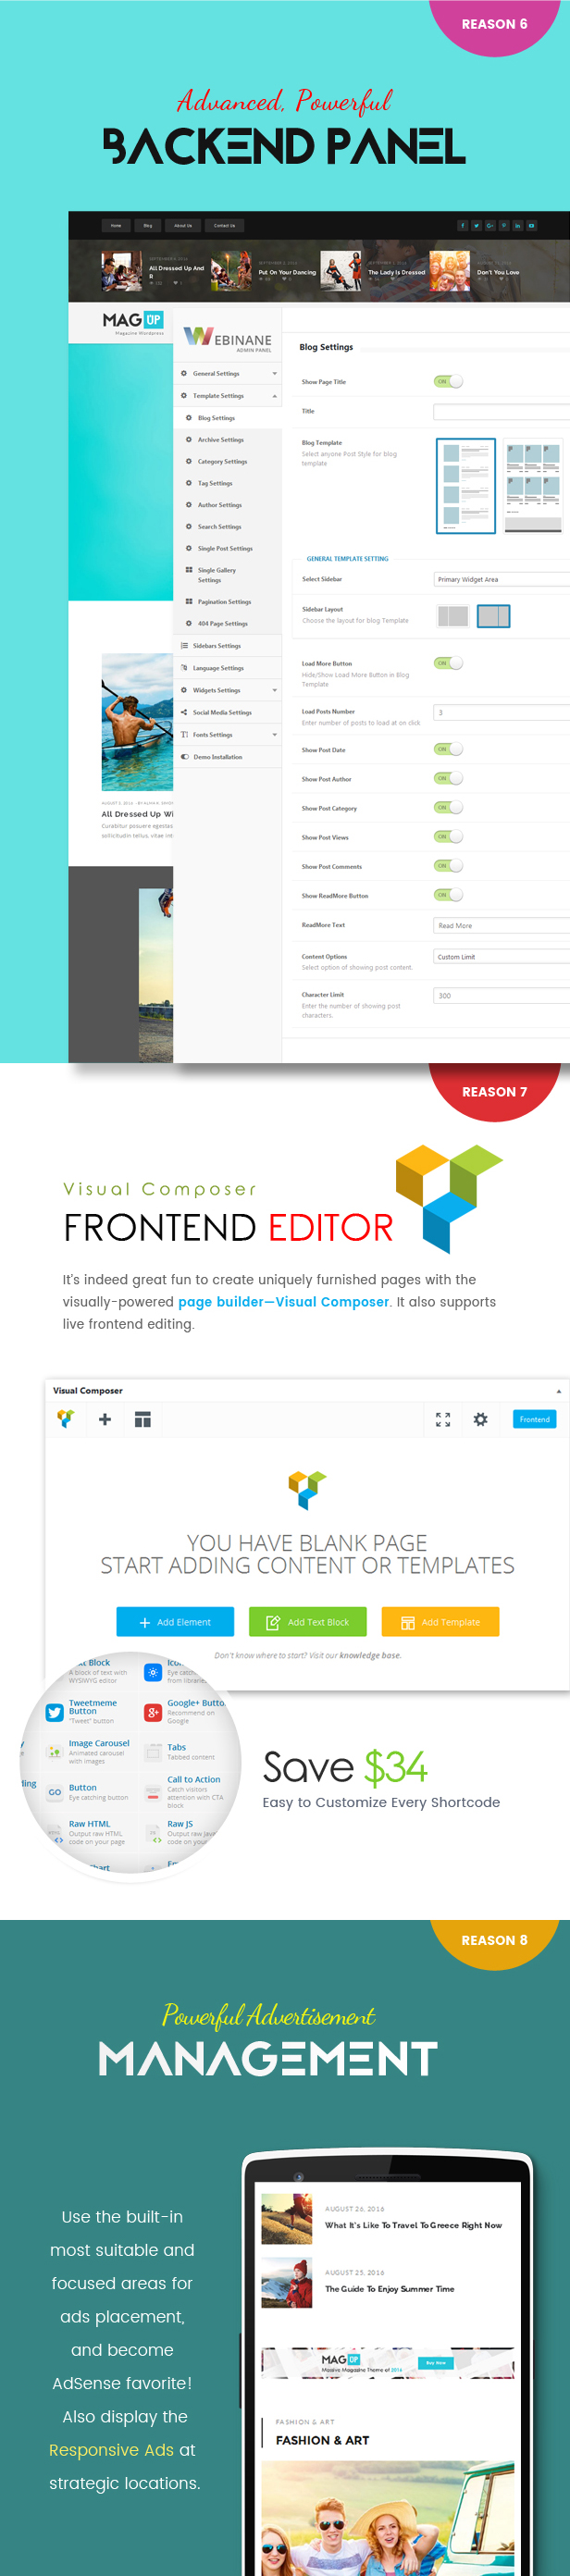 MagUp - Modern Styled Magazine WordPress Theme with Paid / Free Guest Blogging System - 7